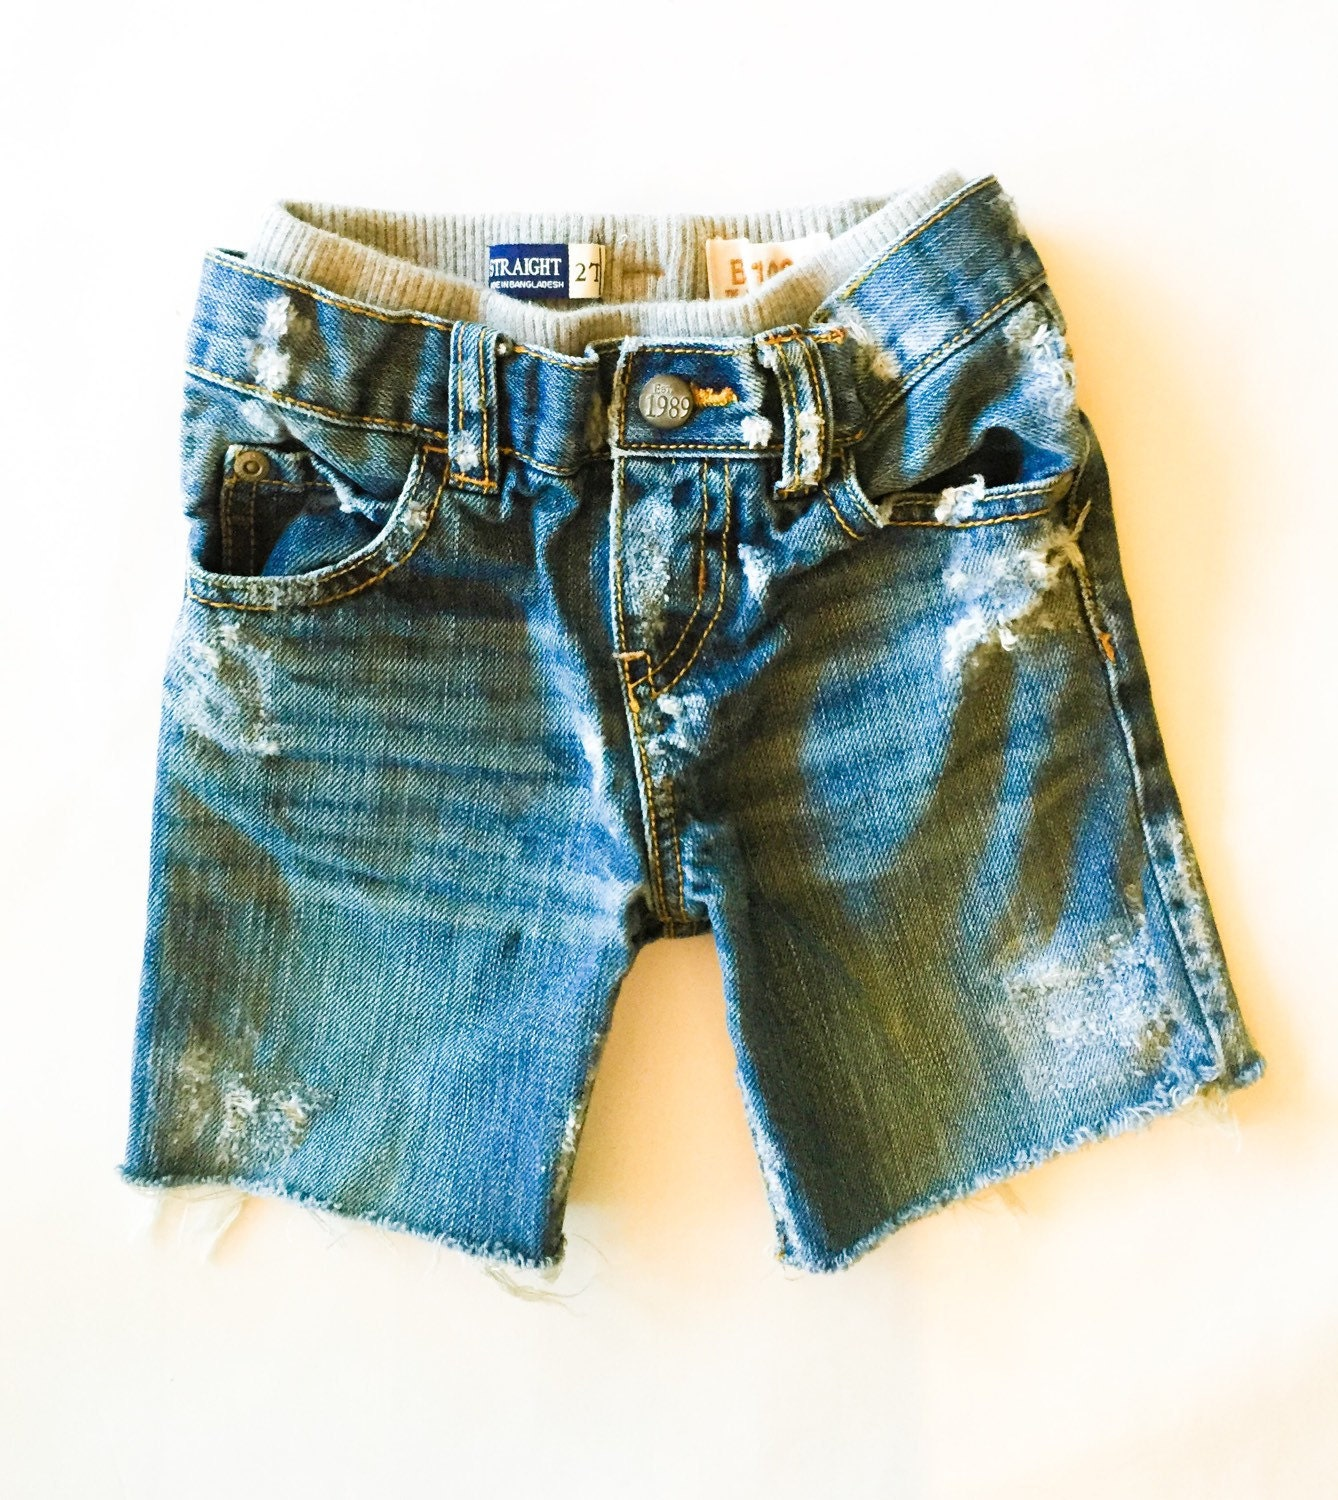 Find a variety of styles of boys' shorts from Wrangler. Whether you're looking for jean shorts or cargo shorts, you'll be sure to find what he needs.